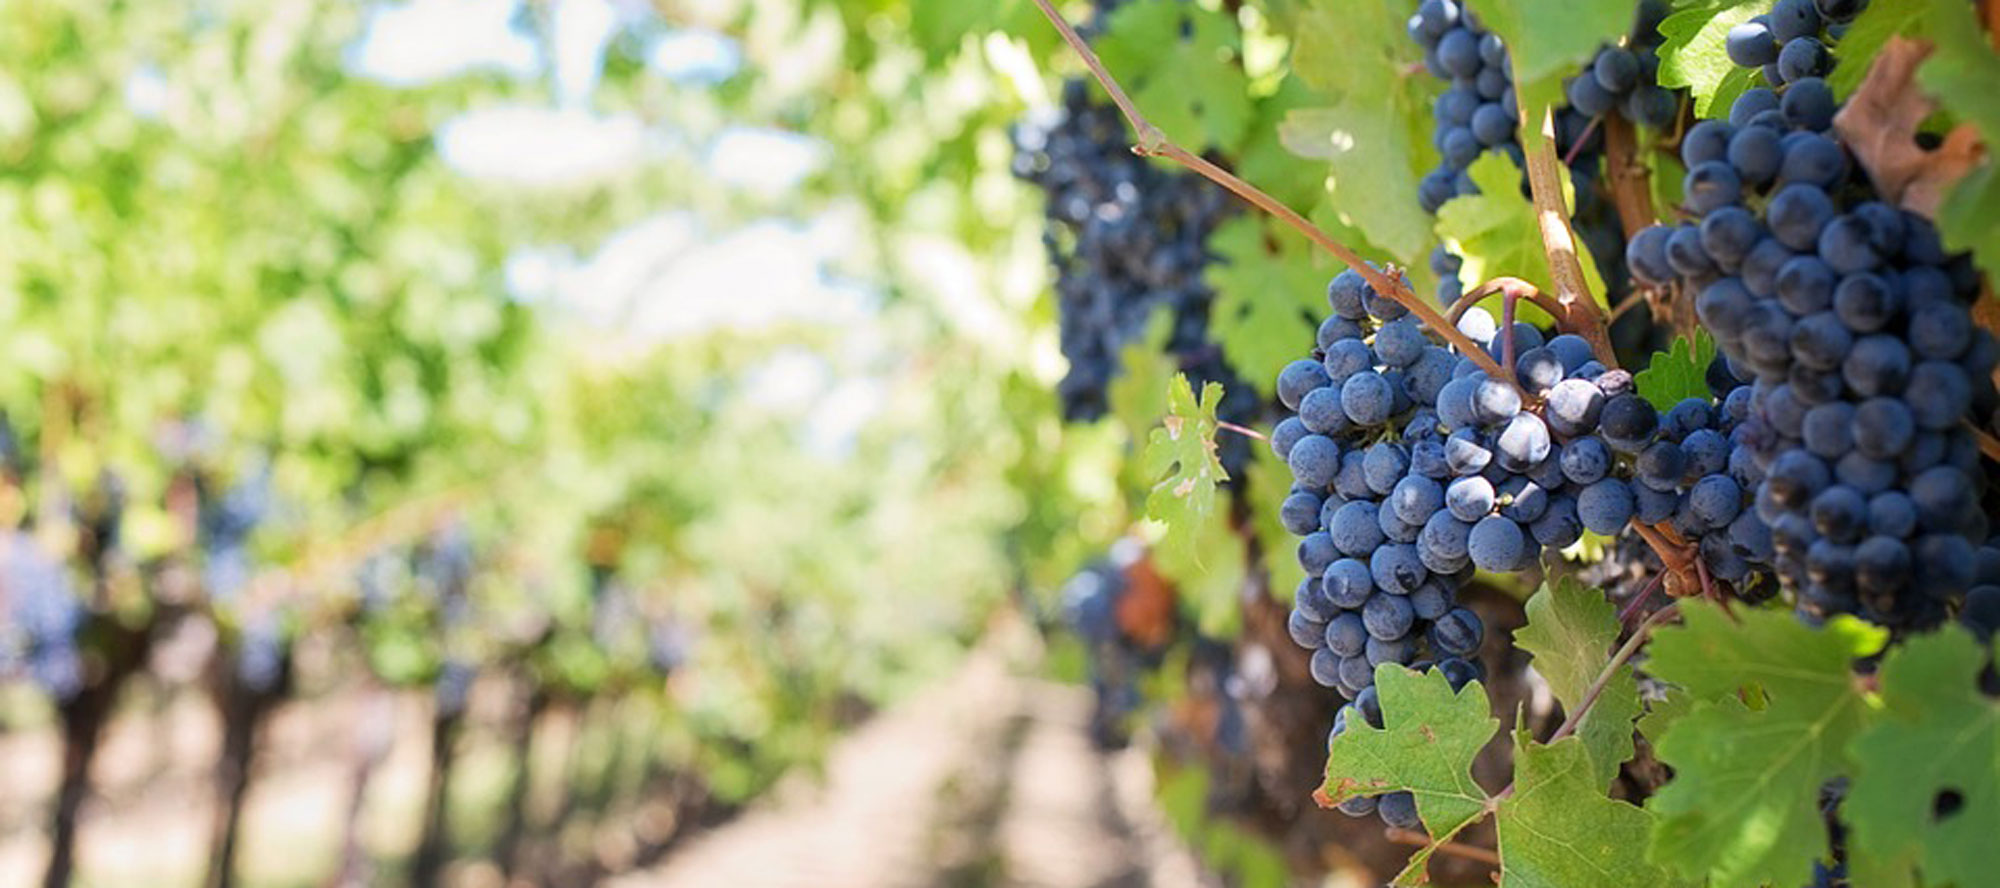 Heroic-Fundraising-Blog-Featured-Image-Grapes-Winery